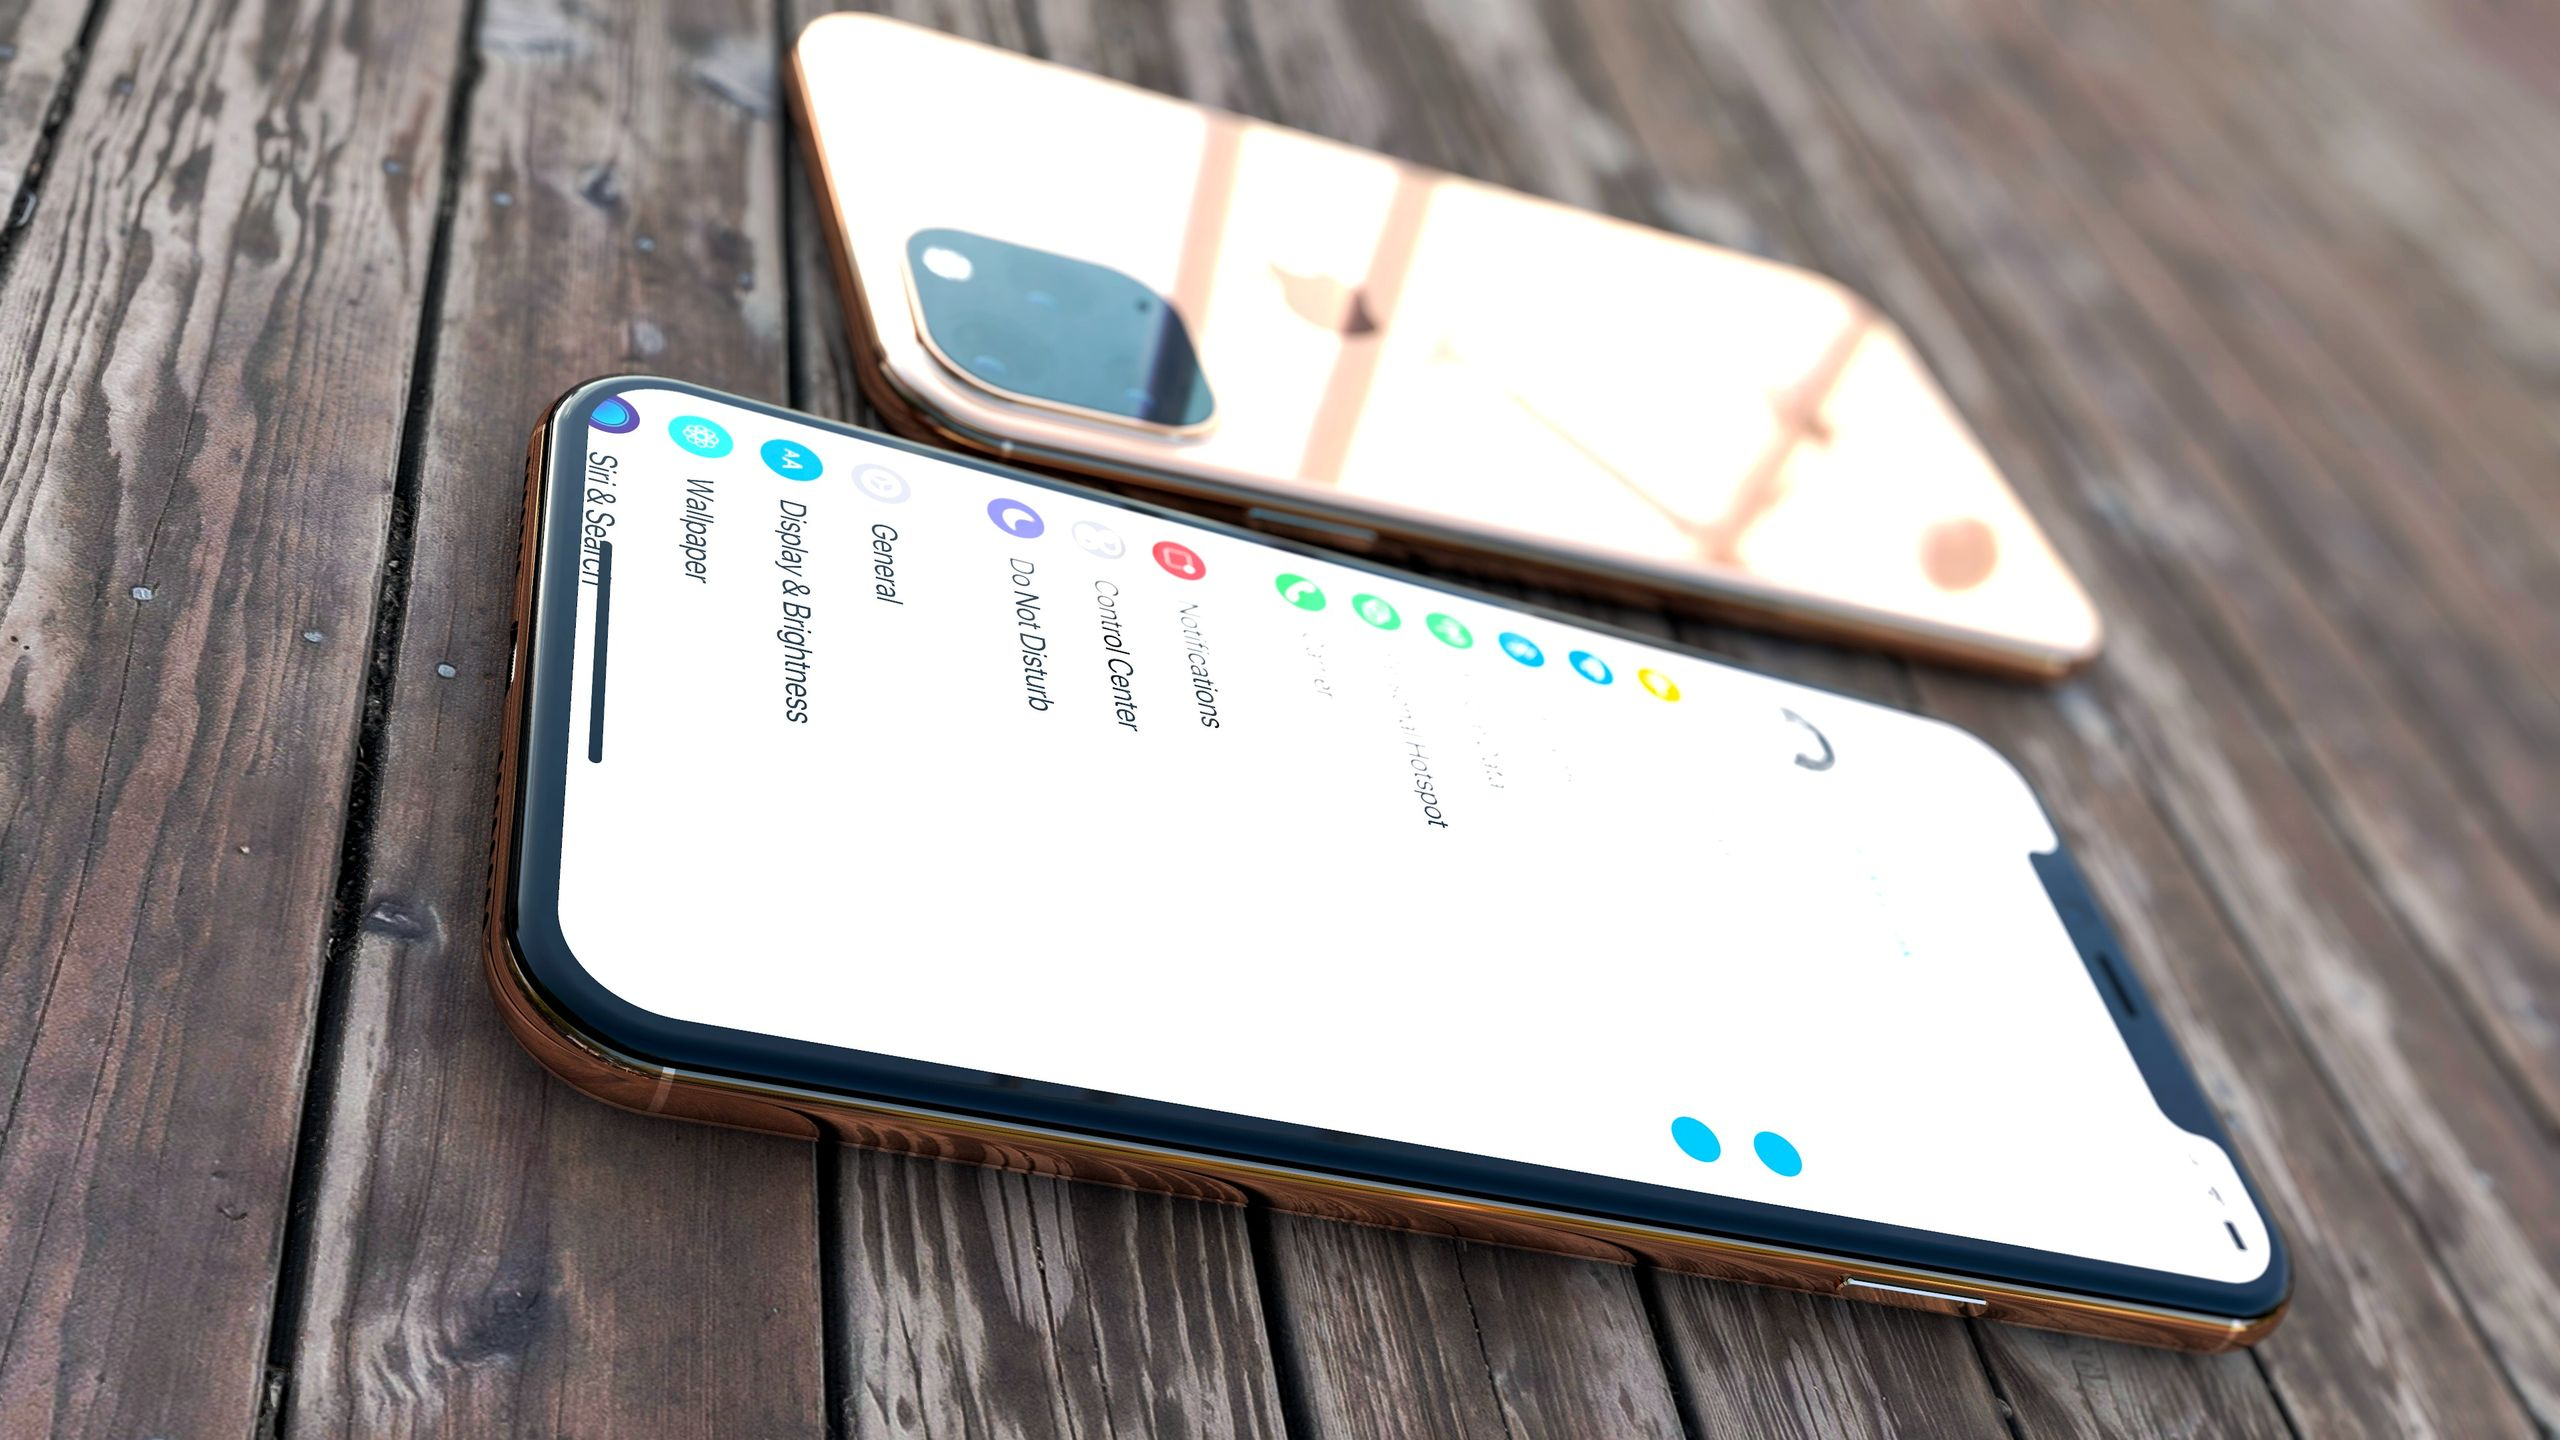 Iphone Xi Concept Images 2019 2